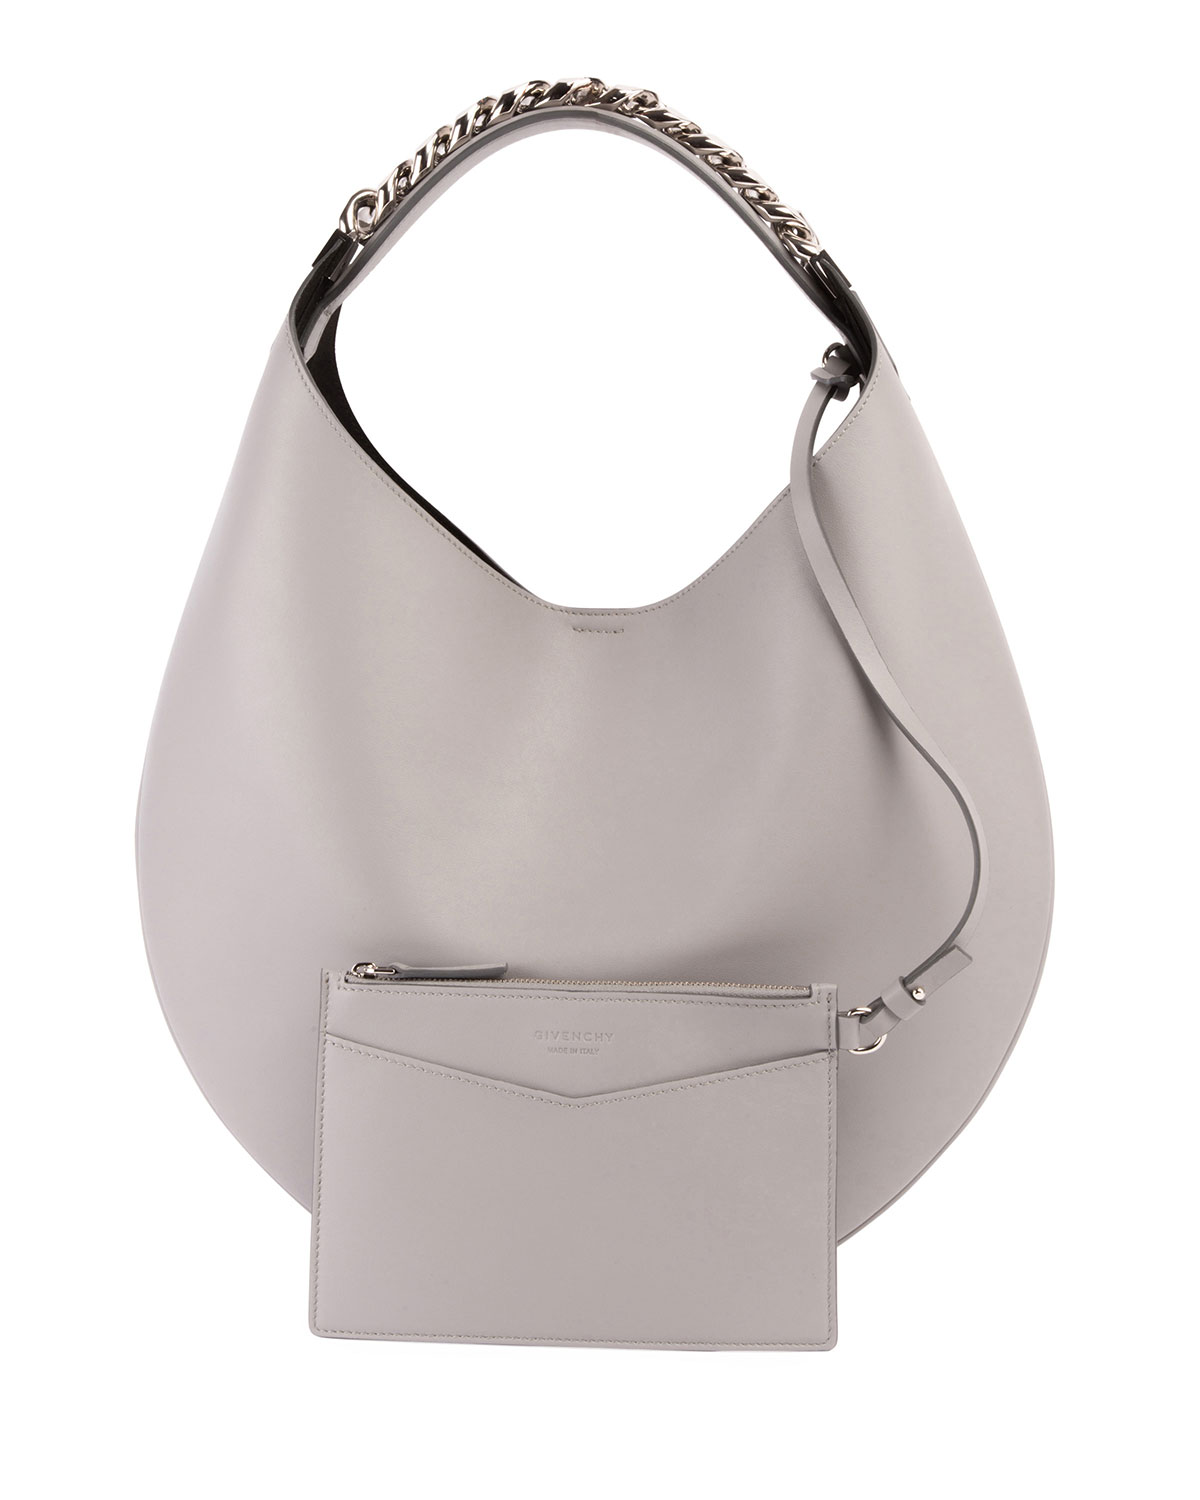 Givenchy Infinity Chain Shoulder Bag  28b8da01ca4d6